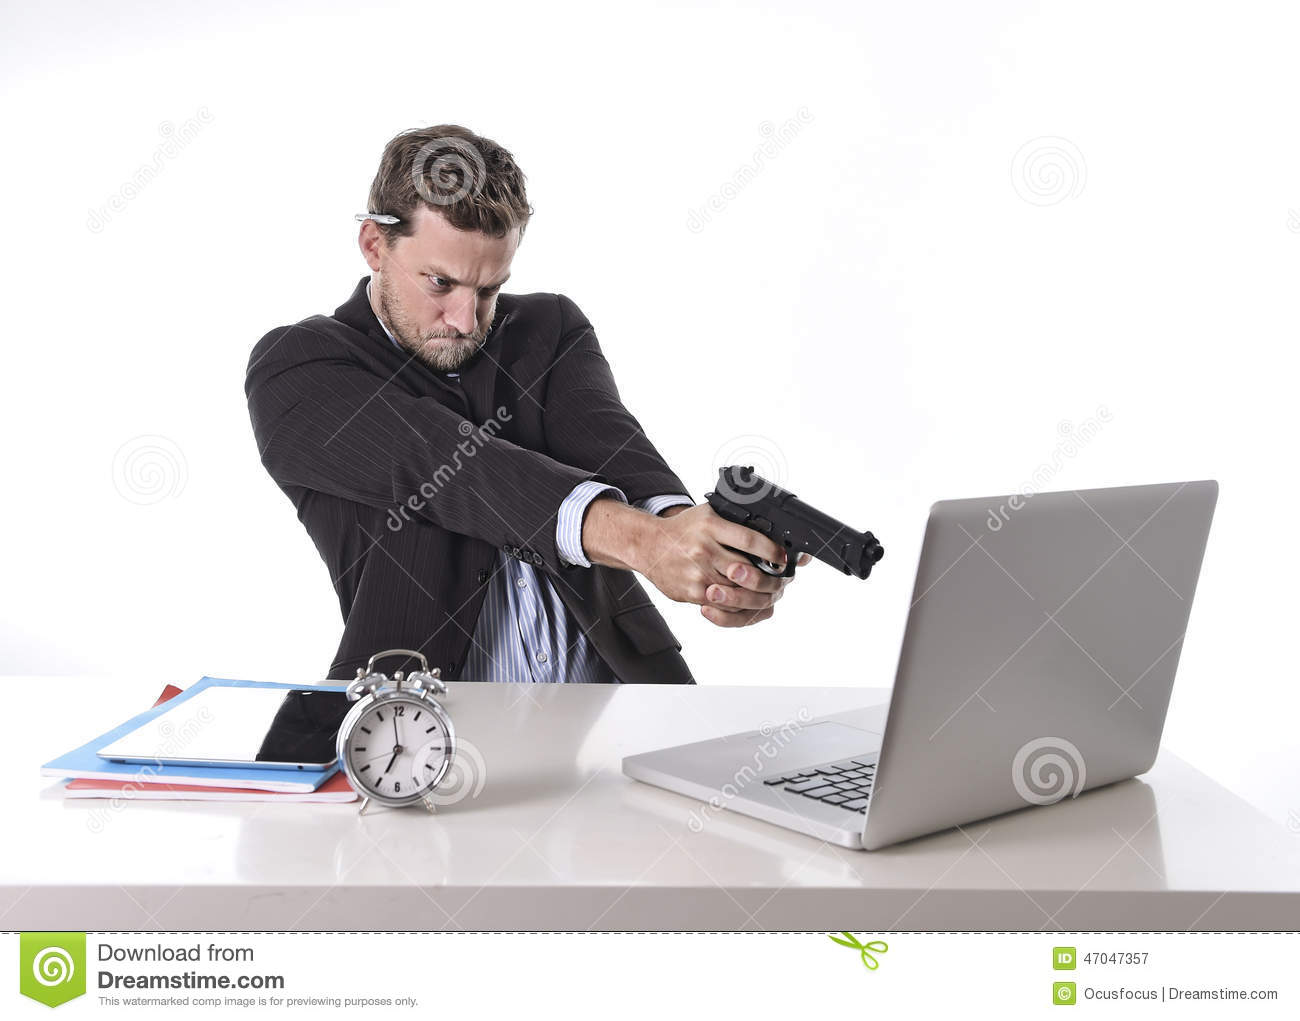 Businessman pointing gun to computer in overwork and overtime work